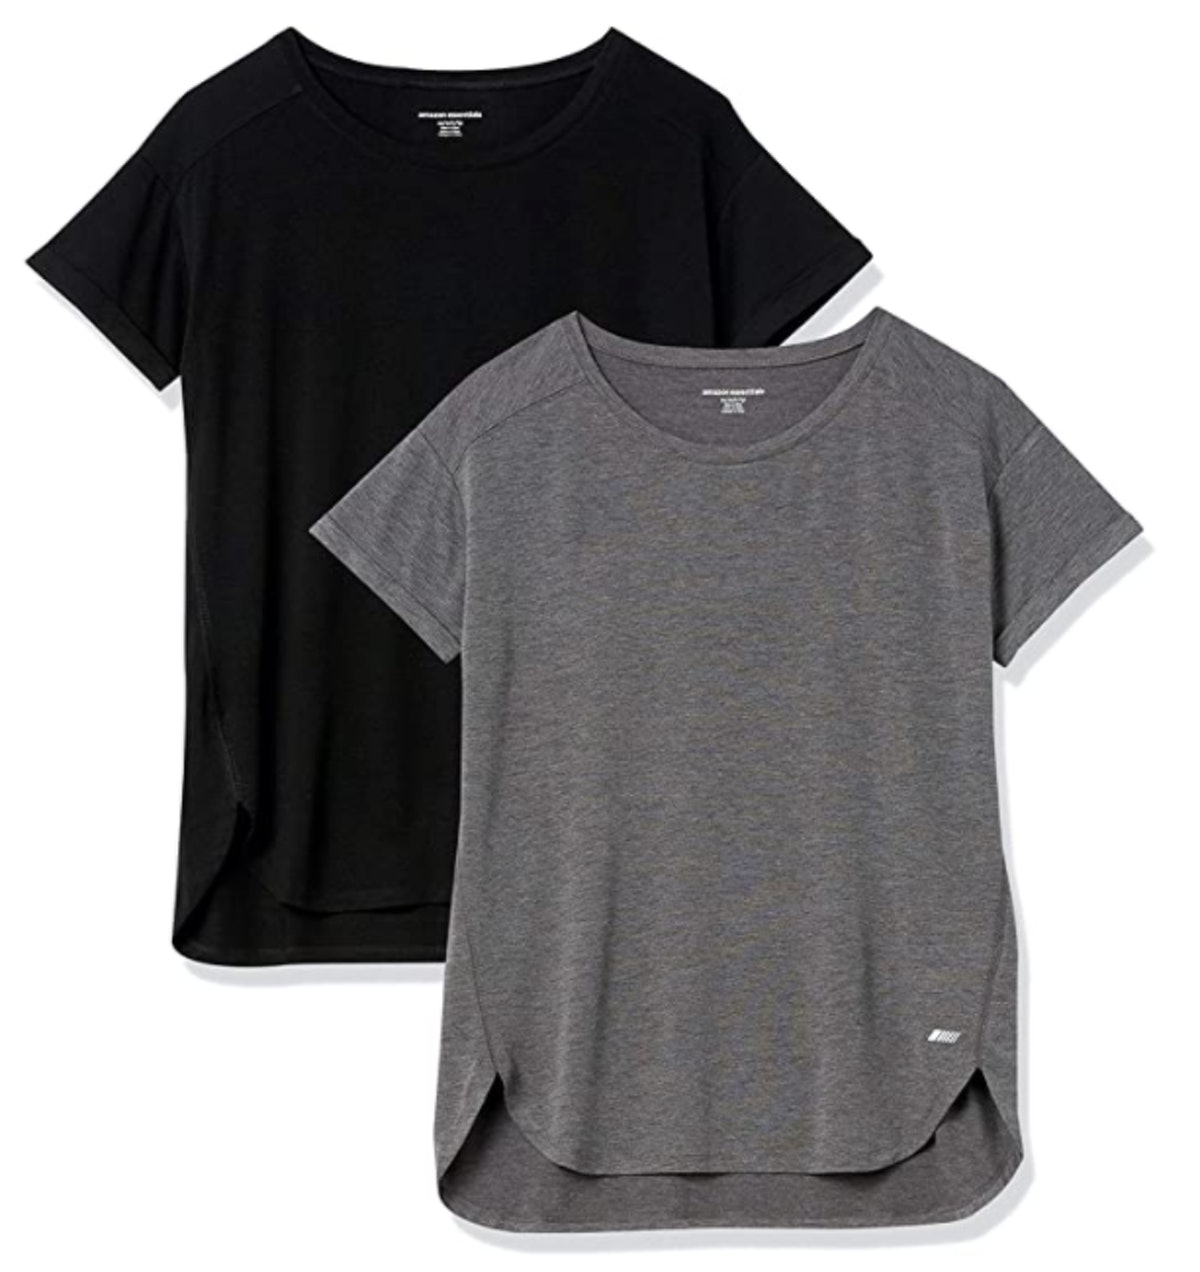 Amazon Essentials Relaxed-Fit Lightweight Crewneck T-Shirt (2-Pack)